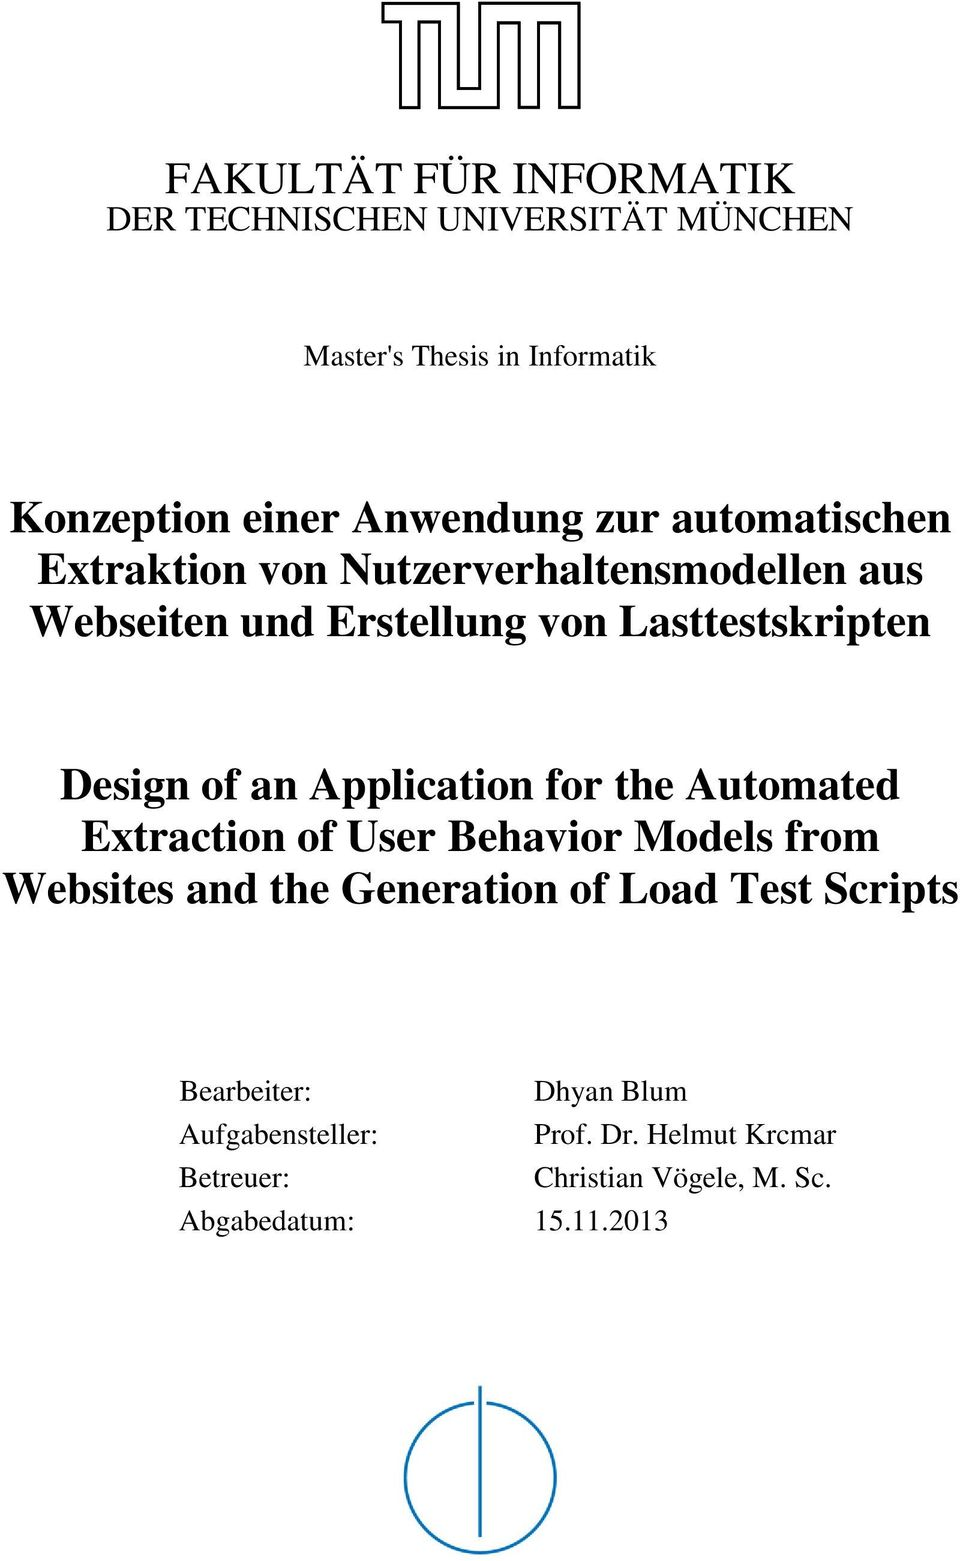 an Application for the Automated Extraction of User Behavior Models from Websites and the Generation of Load Test